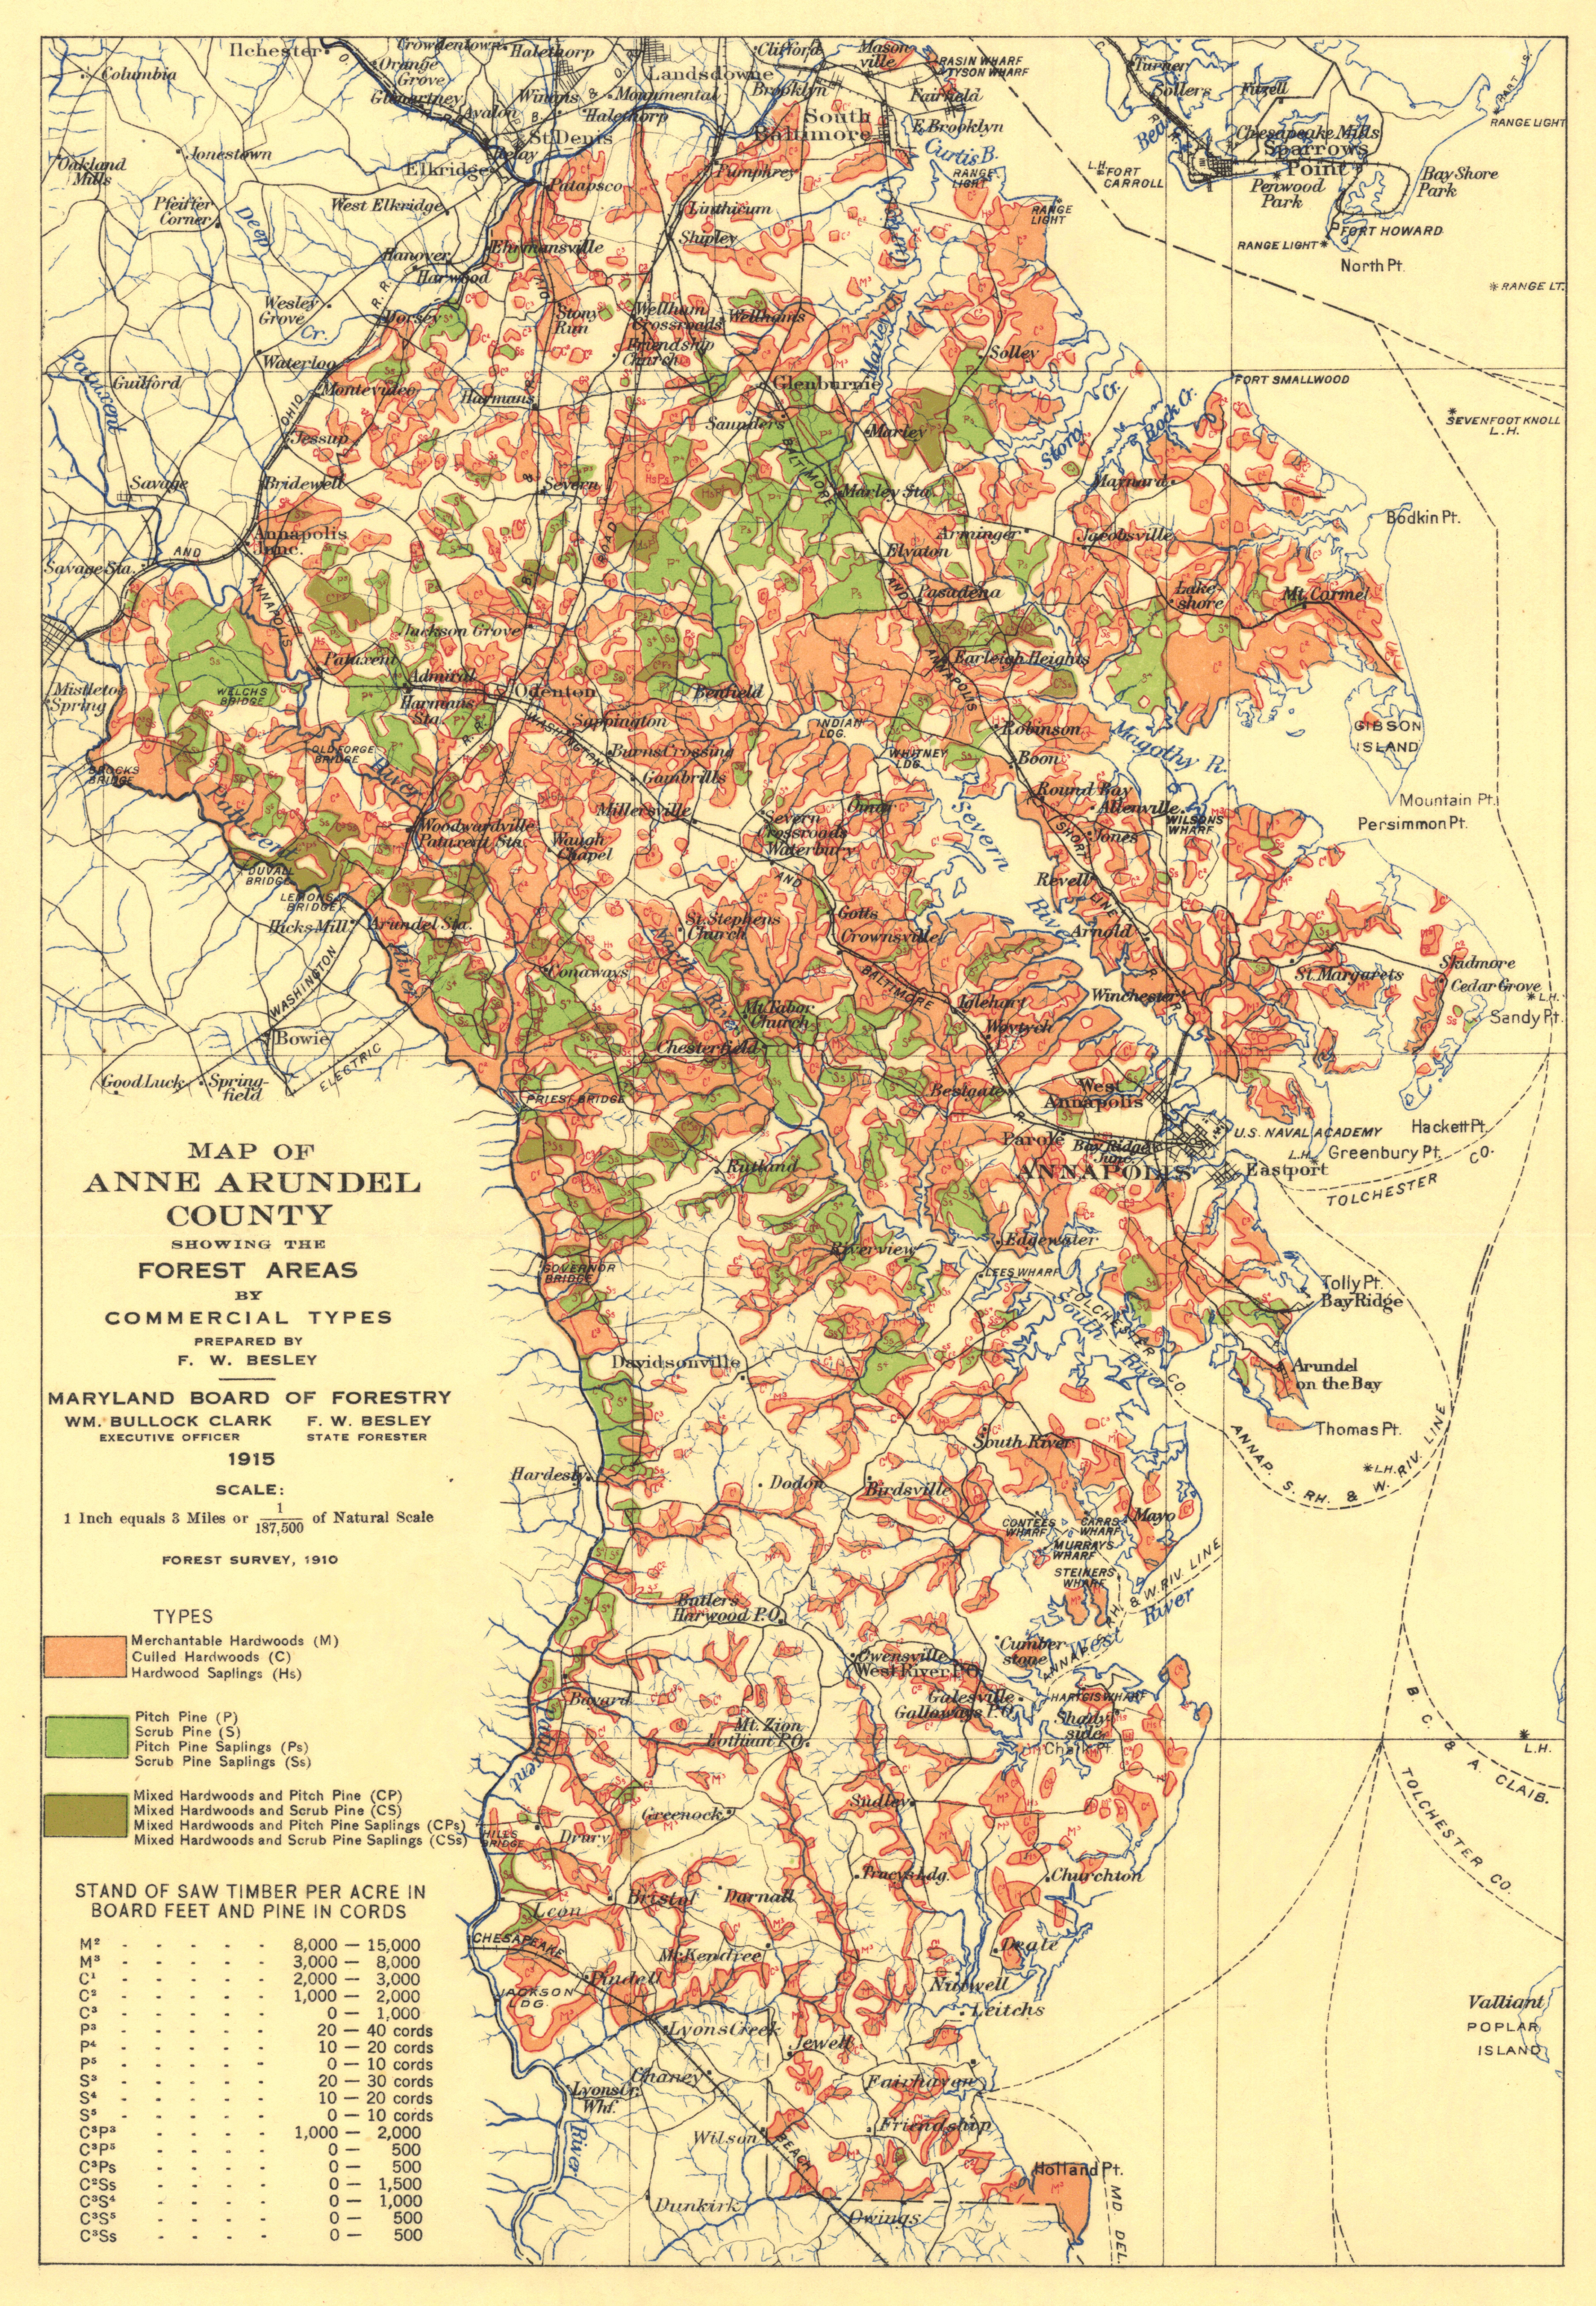 Map of Anne Arundel County Showing the Forest Areas by ... Map Of Anne Arundel County on map of marion county, map of clarke county, map of st mary's county, map of rappahannock county, map of aa county, map of harford county, map of jackson county, map of kings county, map of calvert county, map of clark county, map of duval county, map of laurel county, map of baltimore county public schools, map of baltimore county md, map of garrett county, map of talbot county, map of preston county, map of caroline county, map of prince george's county, map of howard county md,